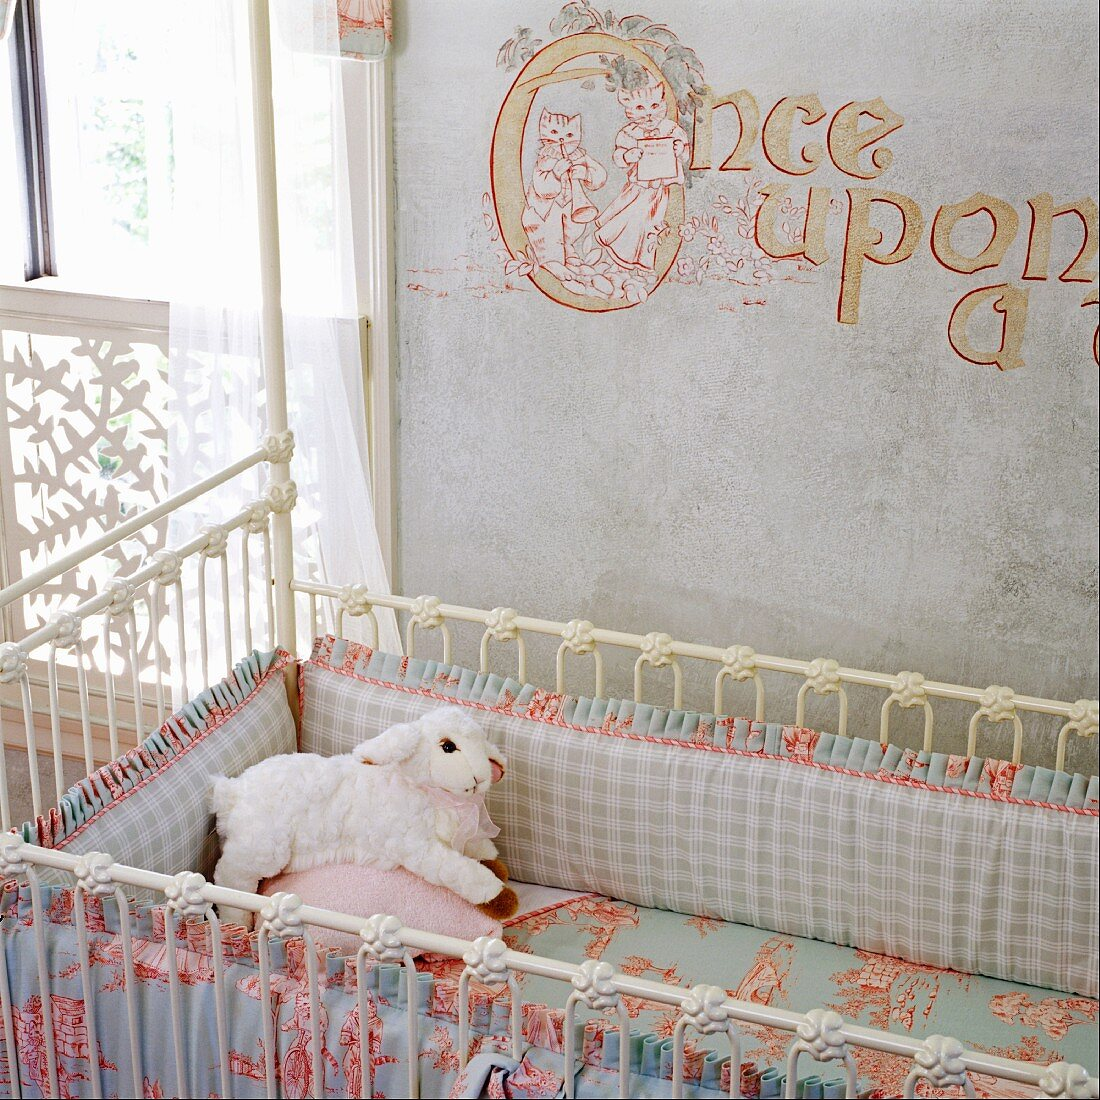 Antique, white cot with pastel bed linen against wall painted with lettering